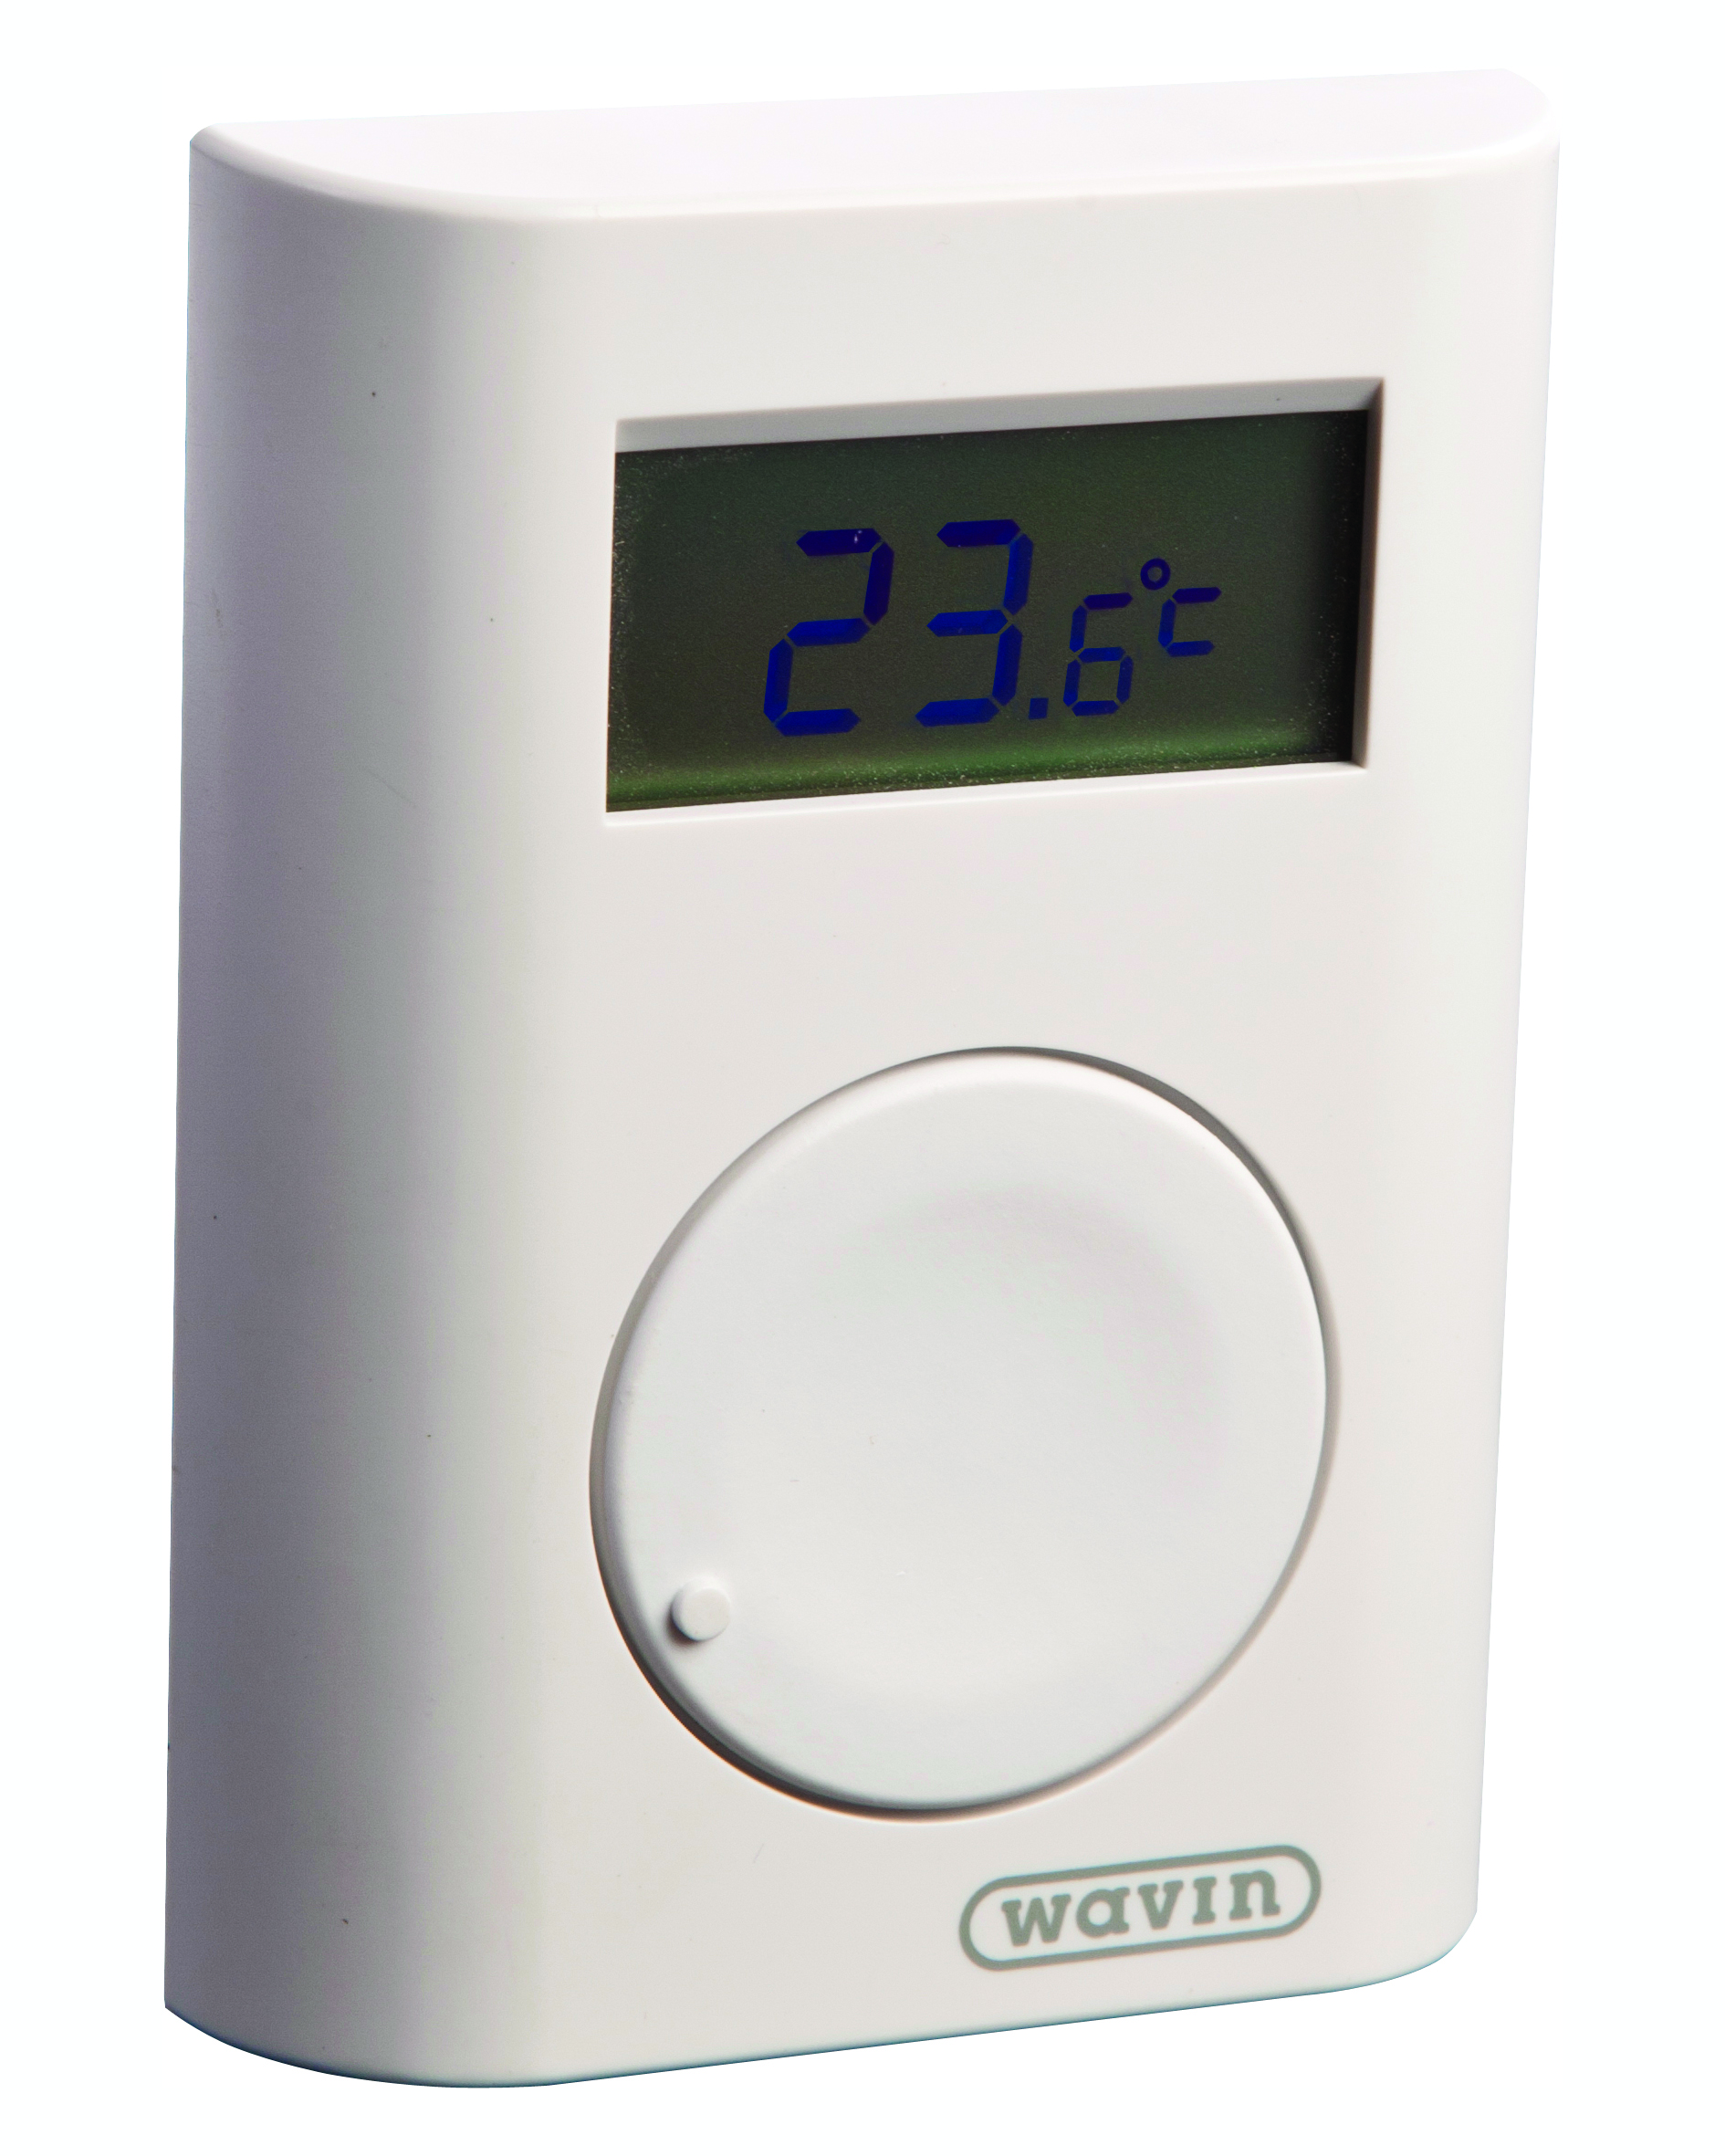 Hep2O UFH Wireless Programmable Thermostat 15UH383